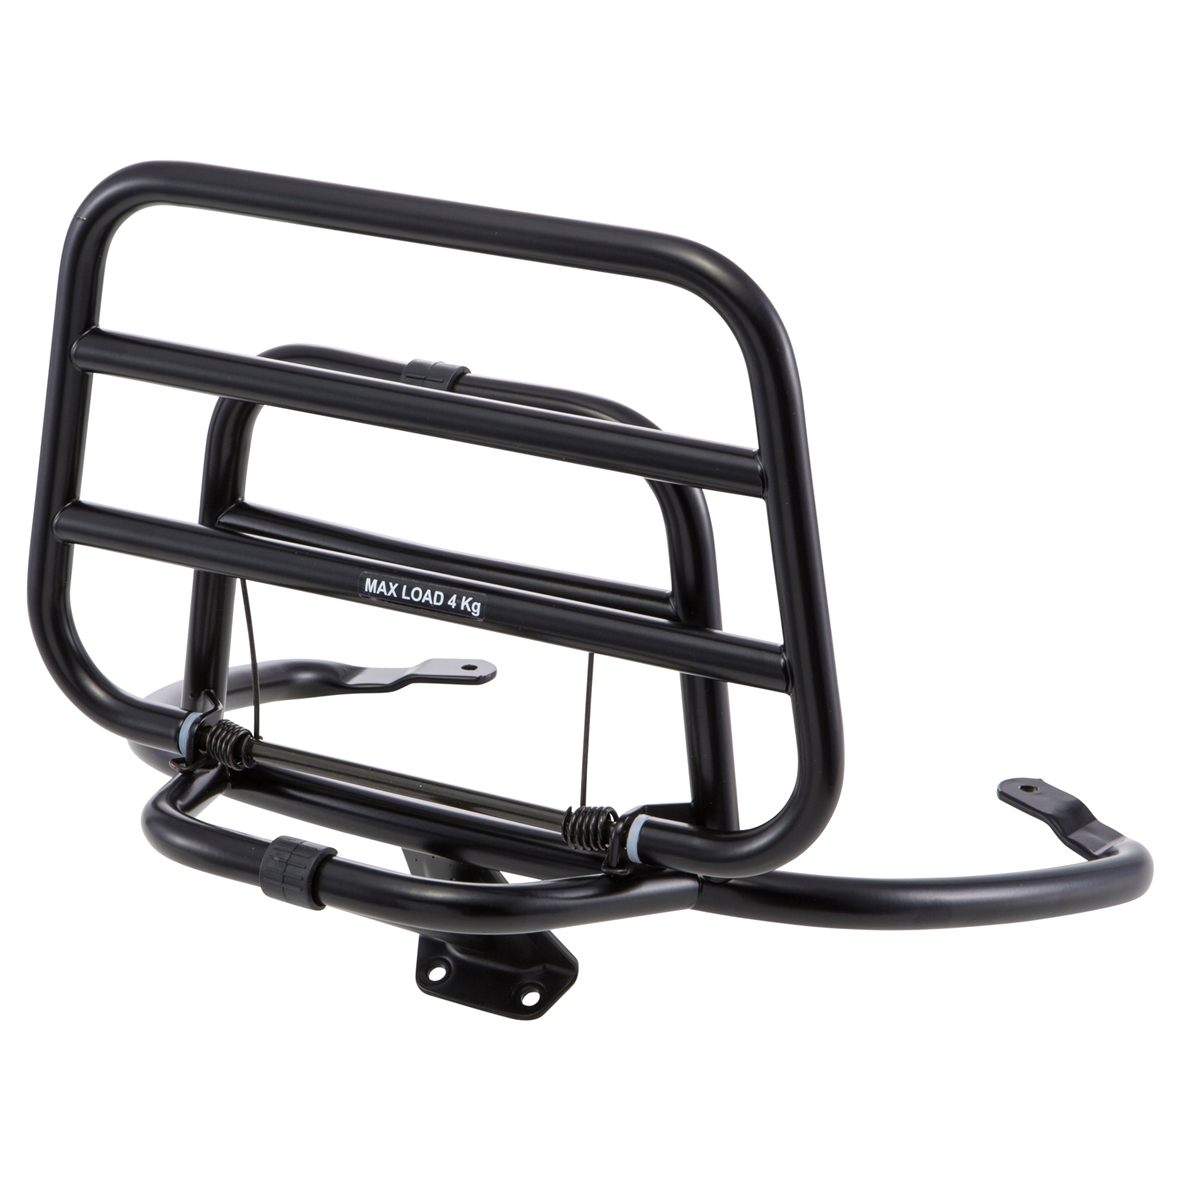 Product Image for 'Luggage Carrier rear PIAGGIOTitle'